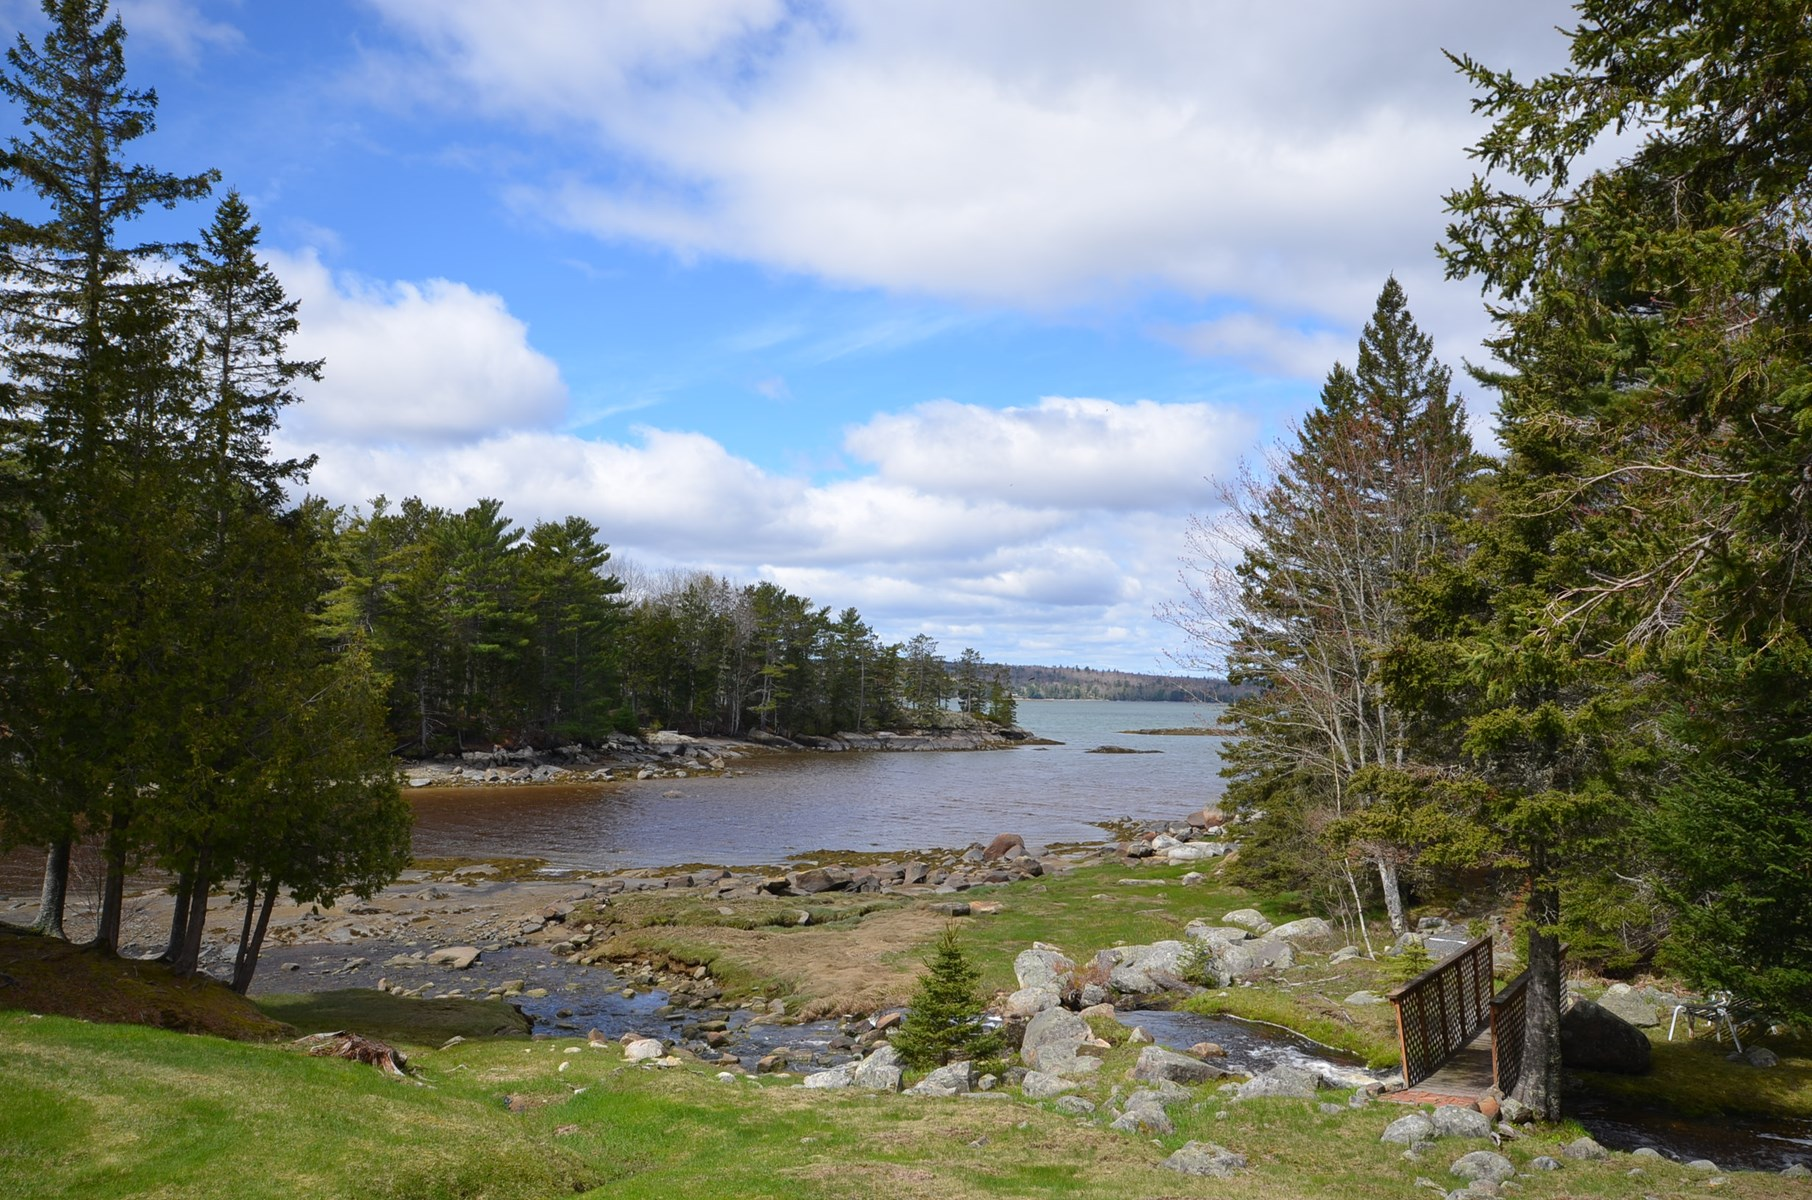 Bay Front Home for Sale in Sullivan, Maine